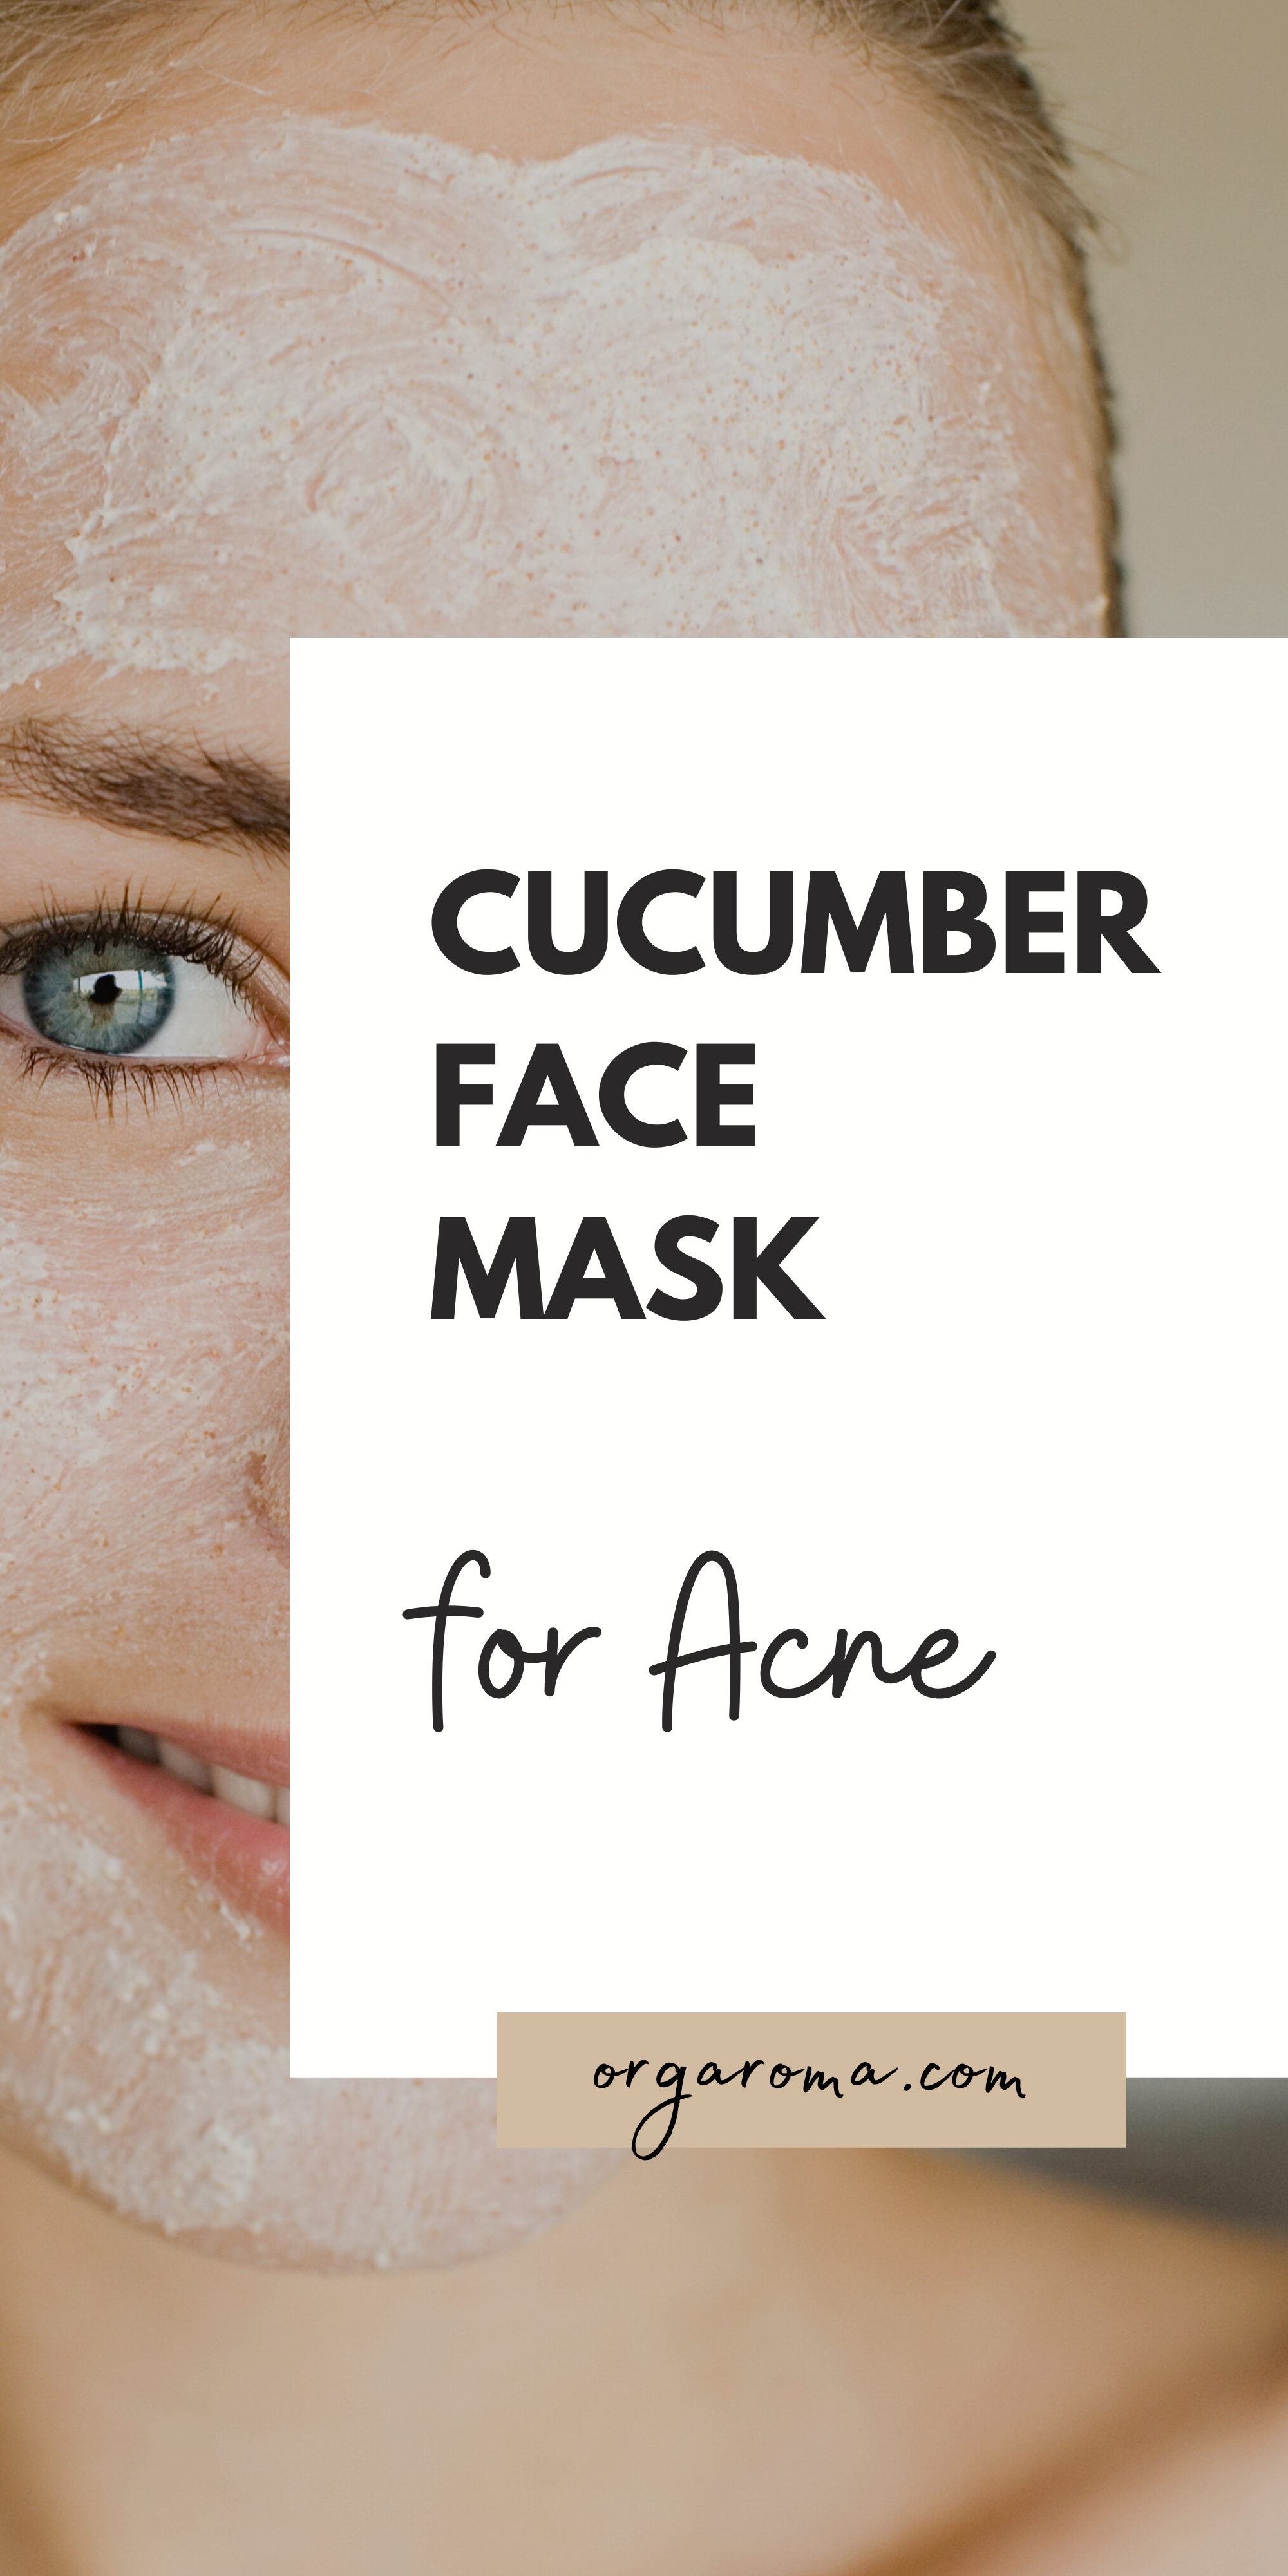 Photo of cucumber face mask acne